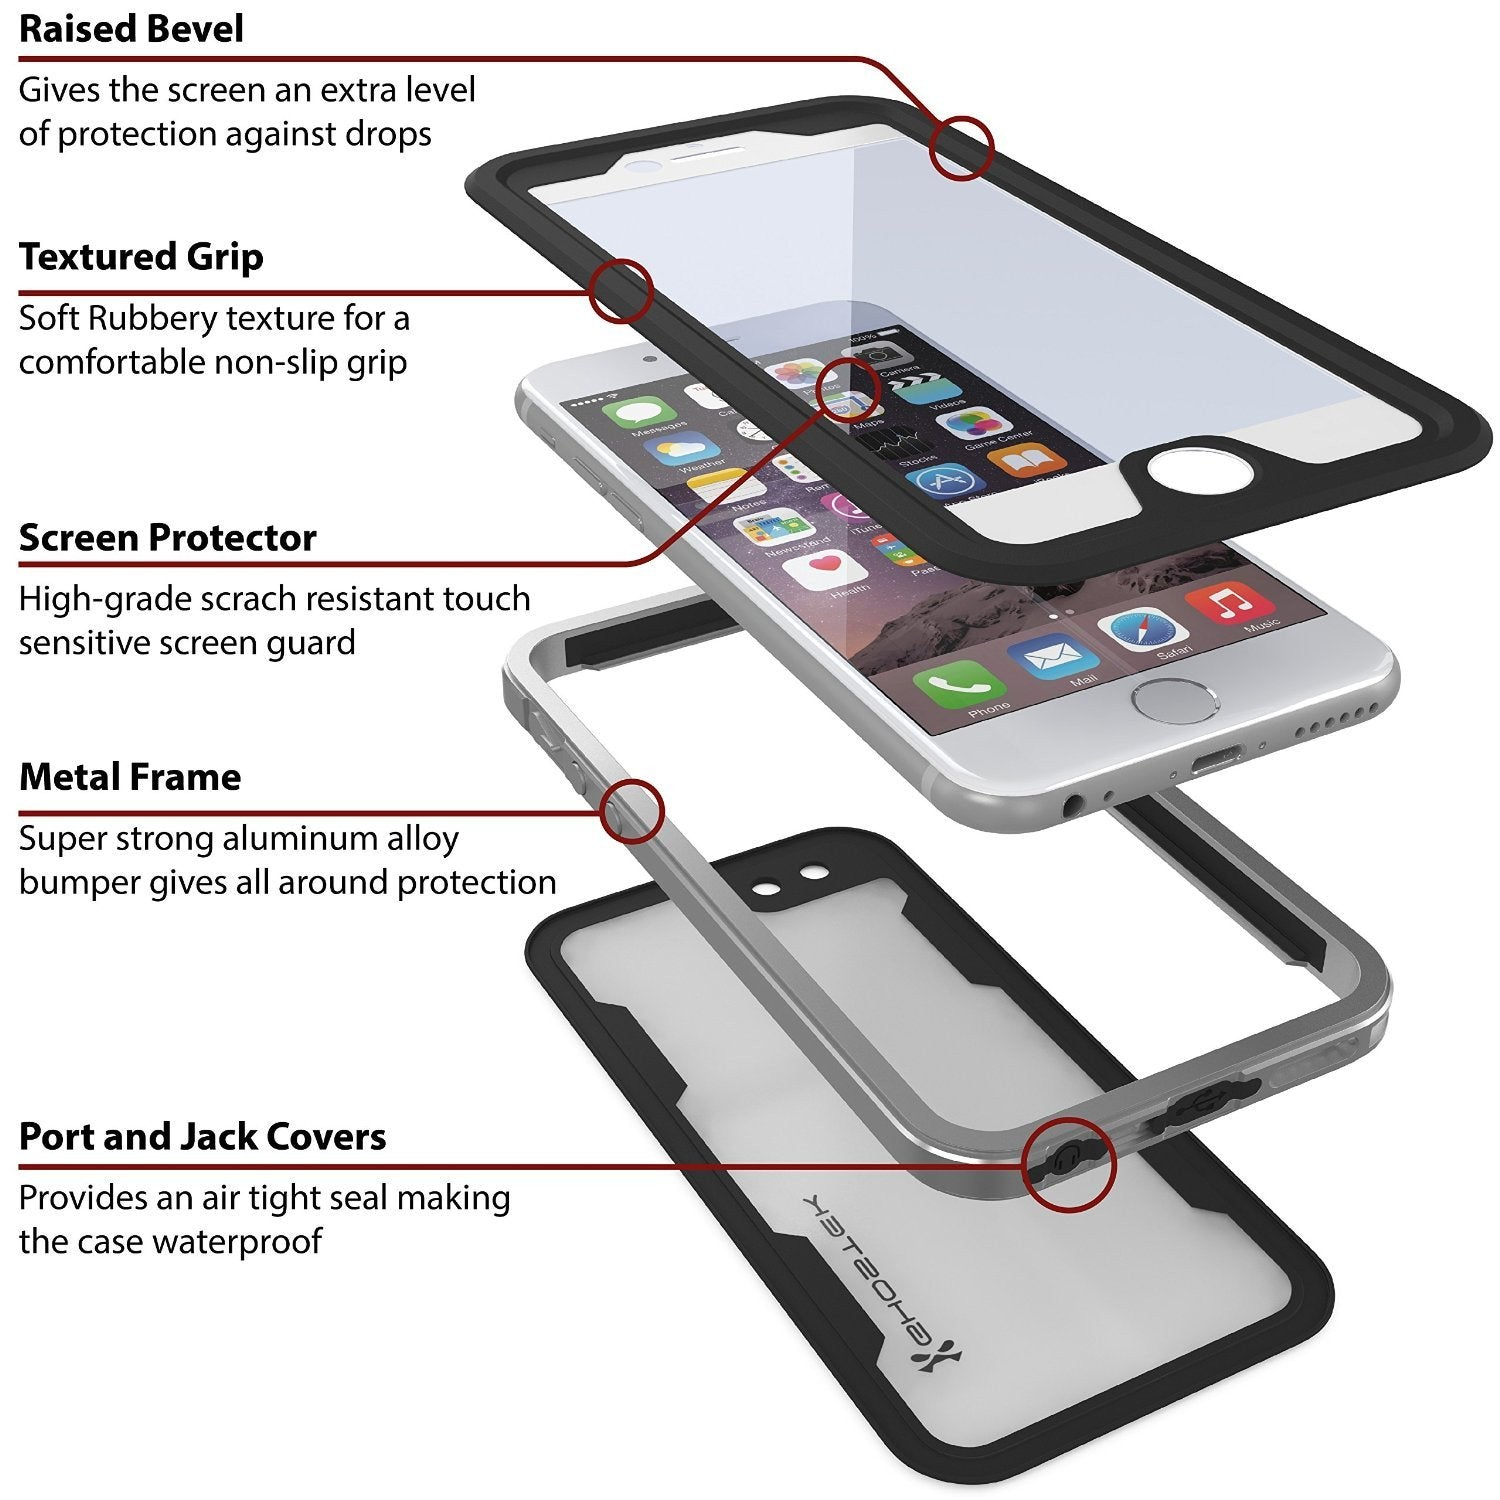 sports shoes 28d81 6269f iPhone 6/6S Waterproof Case, Ghostek Atomic 2.0 SILVER W/ Attached Screen  Protector   Slim Fit